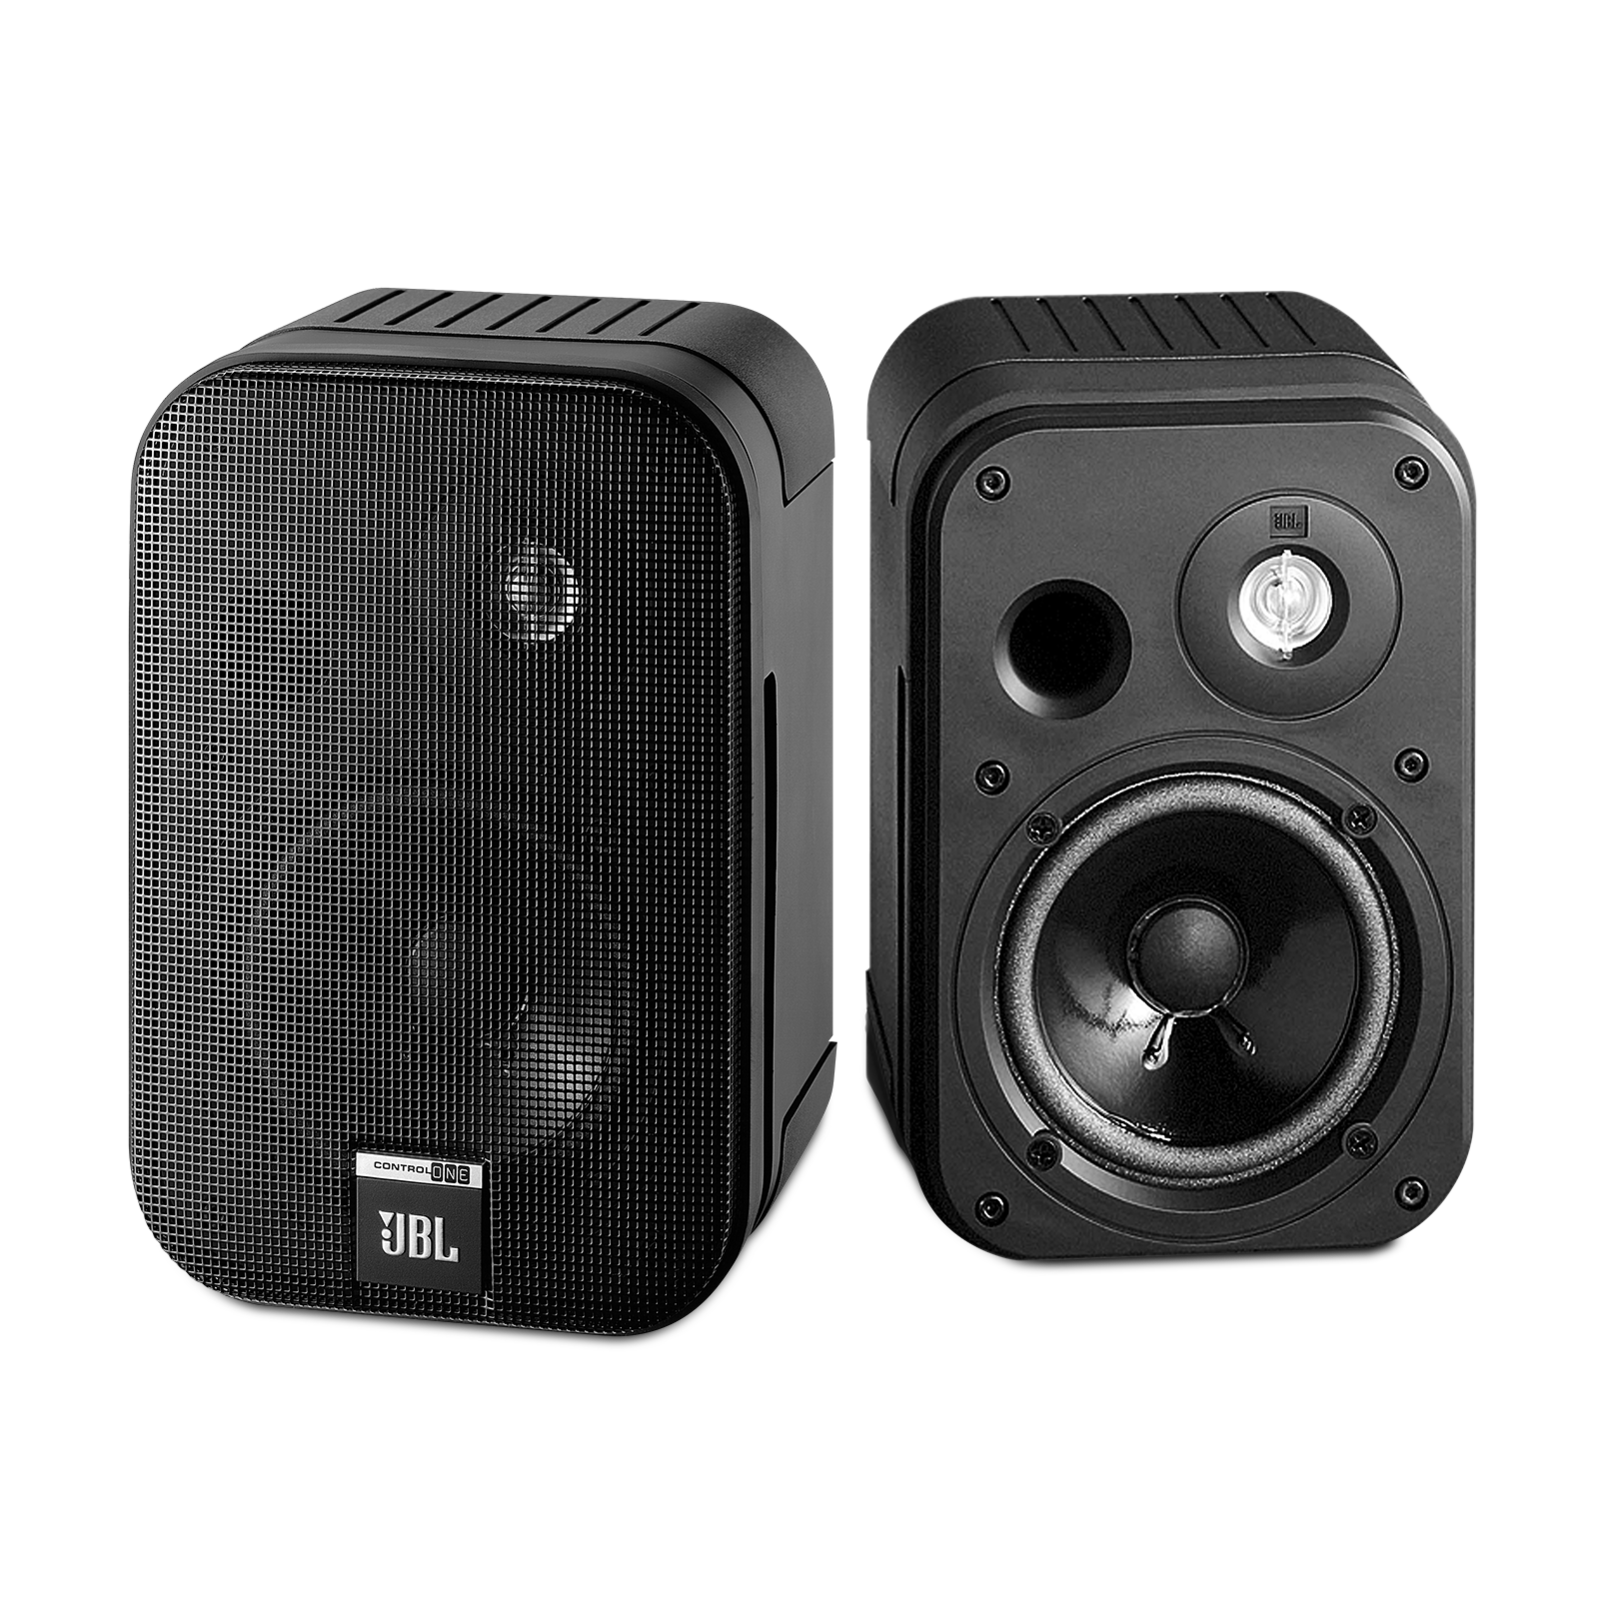 jbl control 1 pro speakers review